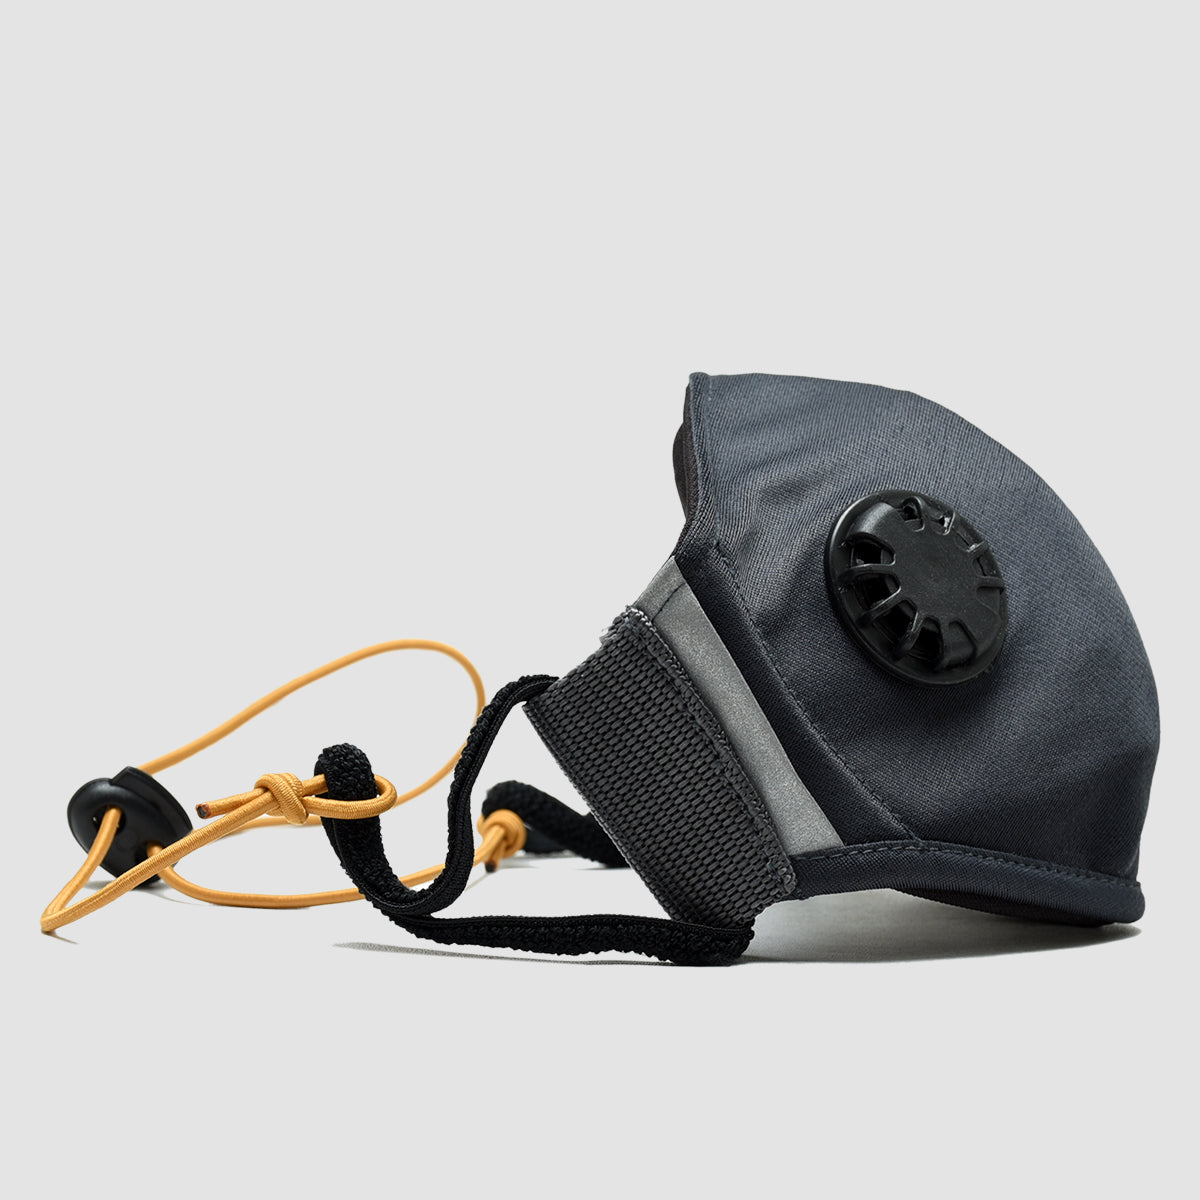 Ergo Activ Mask Charcoal Grey